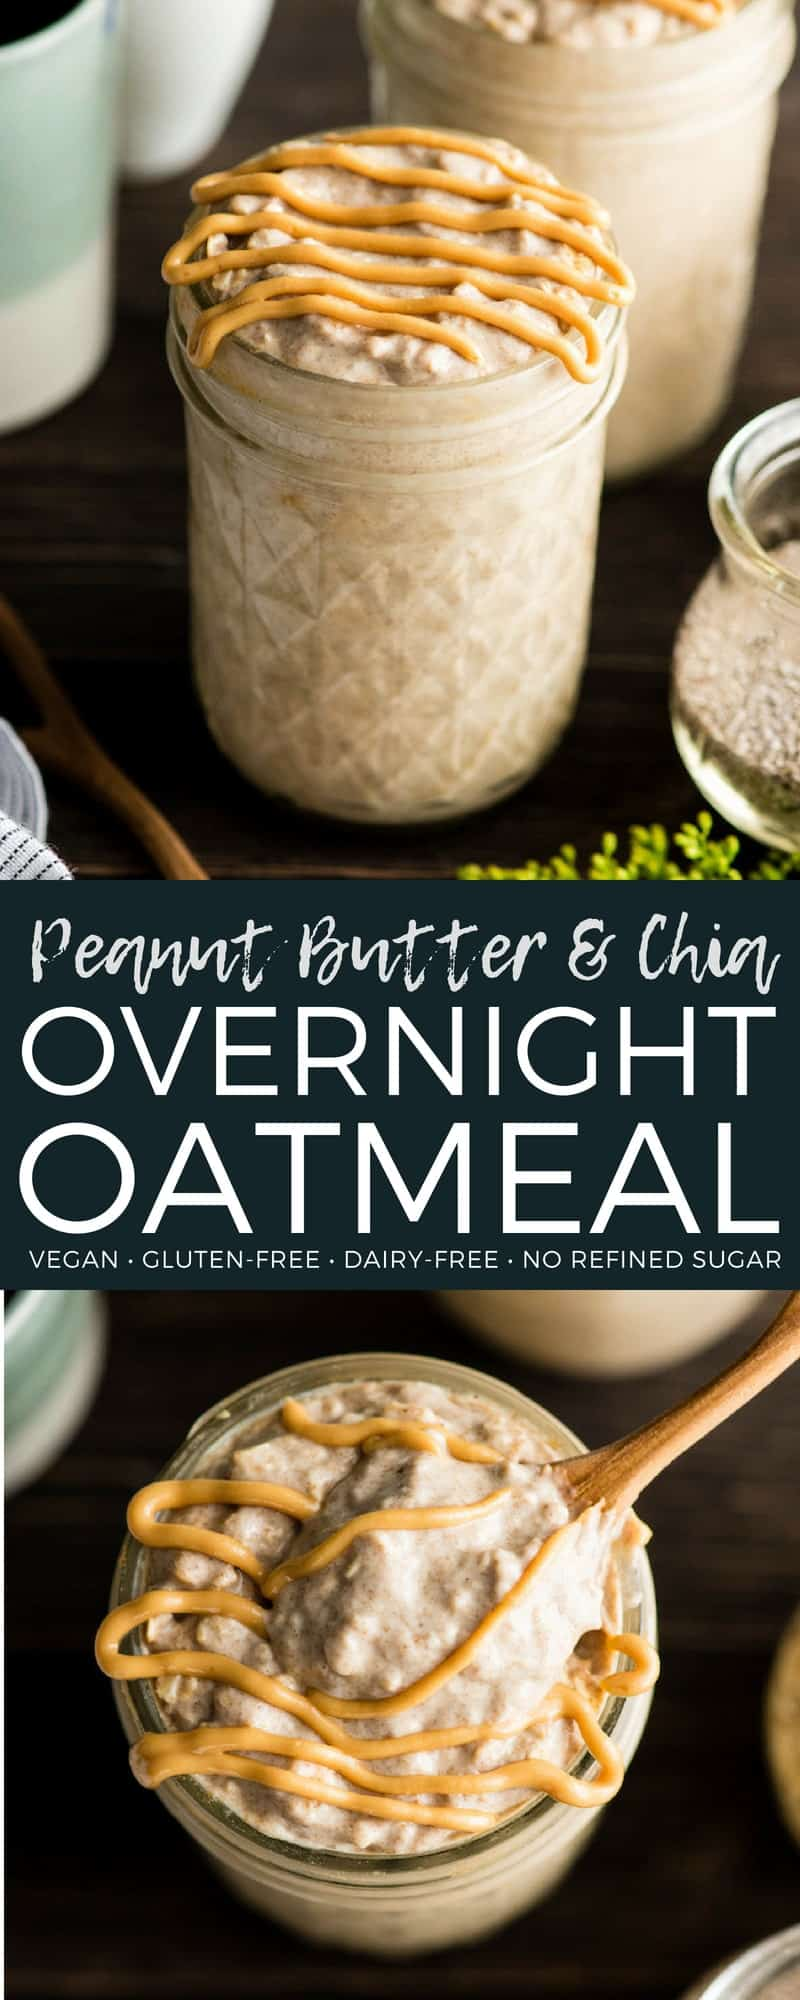 This Peanut Butter Chia Overnight Oats Recipe is an amazing, healthy breakfast full of protein and fiber! These vegan overnight oats are made with only 7 ingredients and take 5 minutes of prep time, so they are also a great meal prep idea for busy weeks! #overnightoats #peanutbutter #healthyrecipe #vitamix